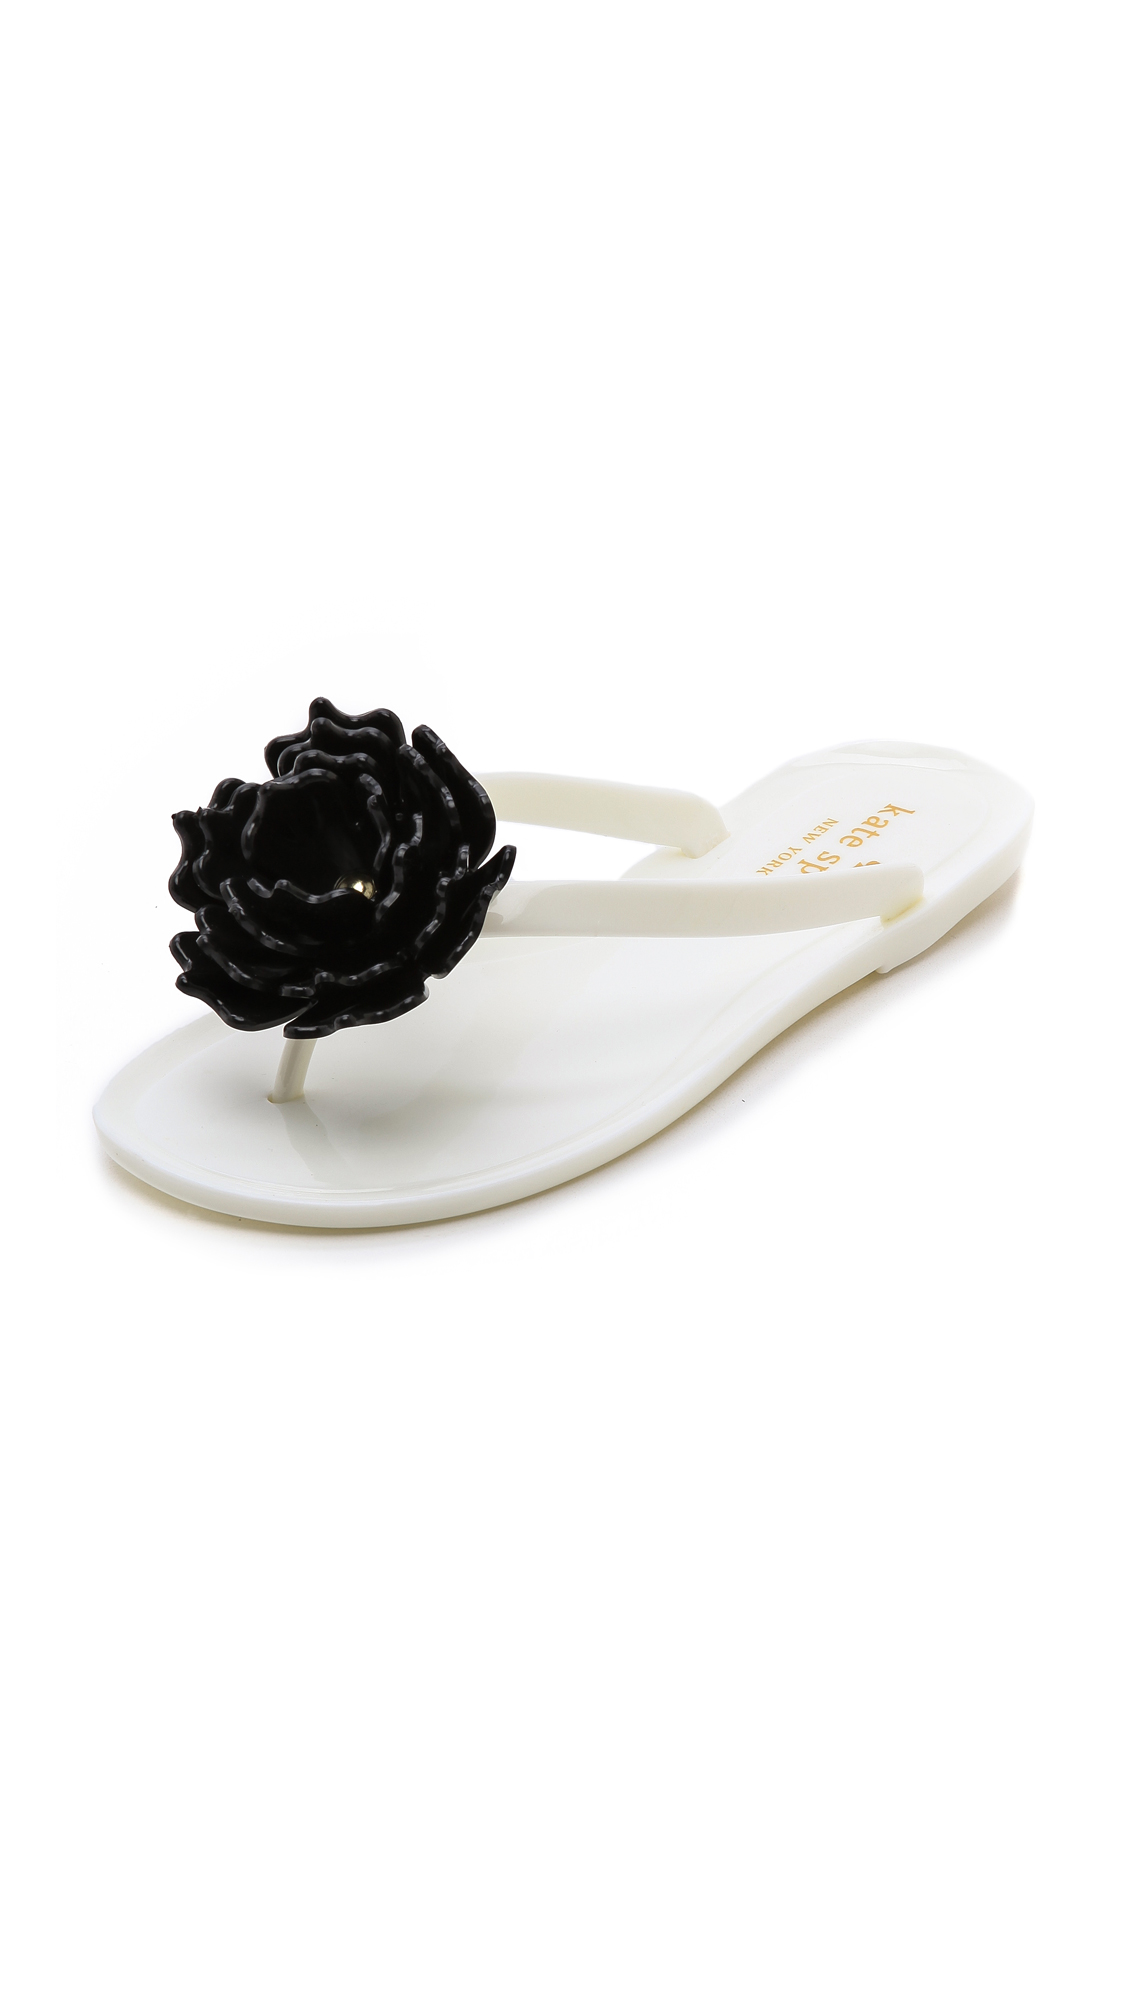 Kate Spade New York Flower Flip Flops Shopbop